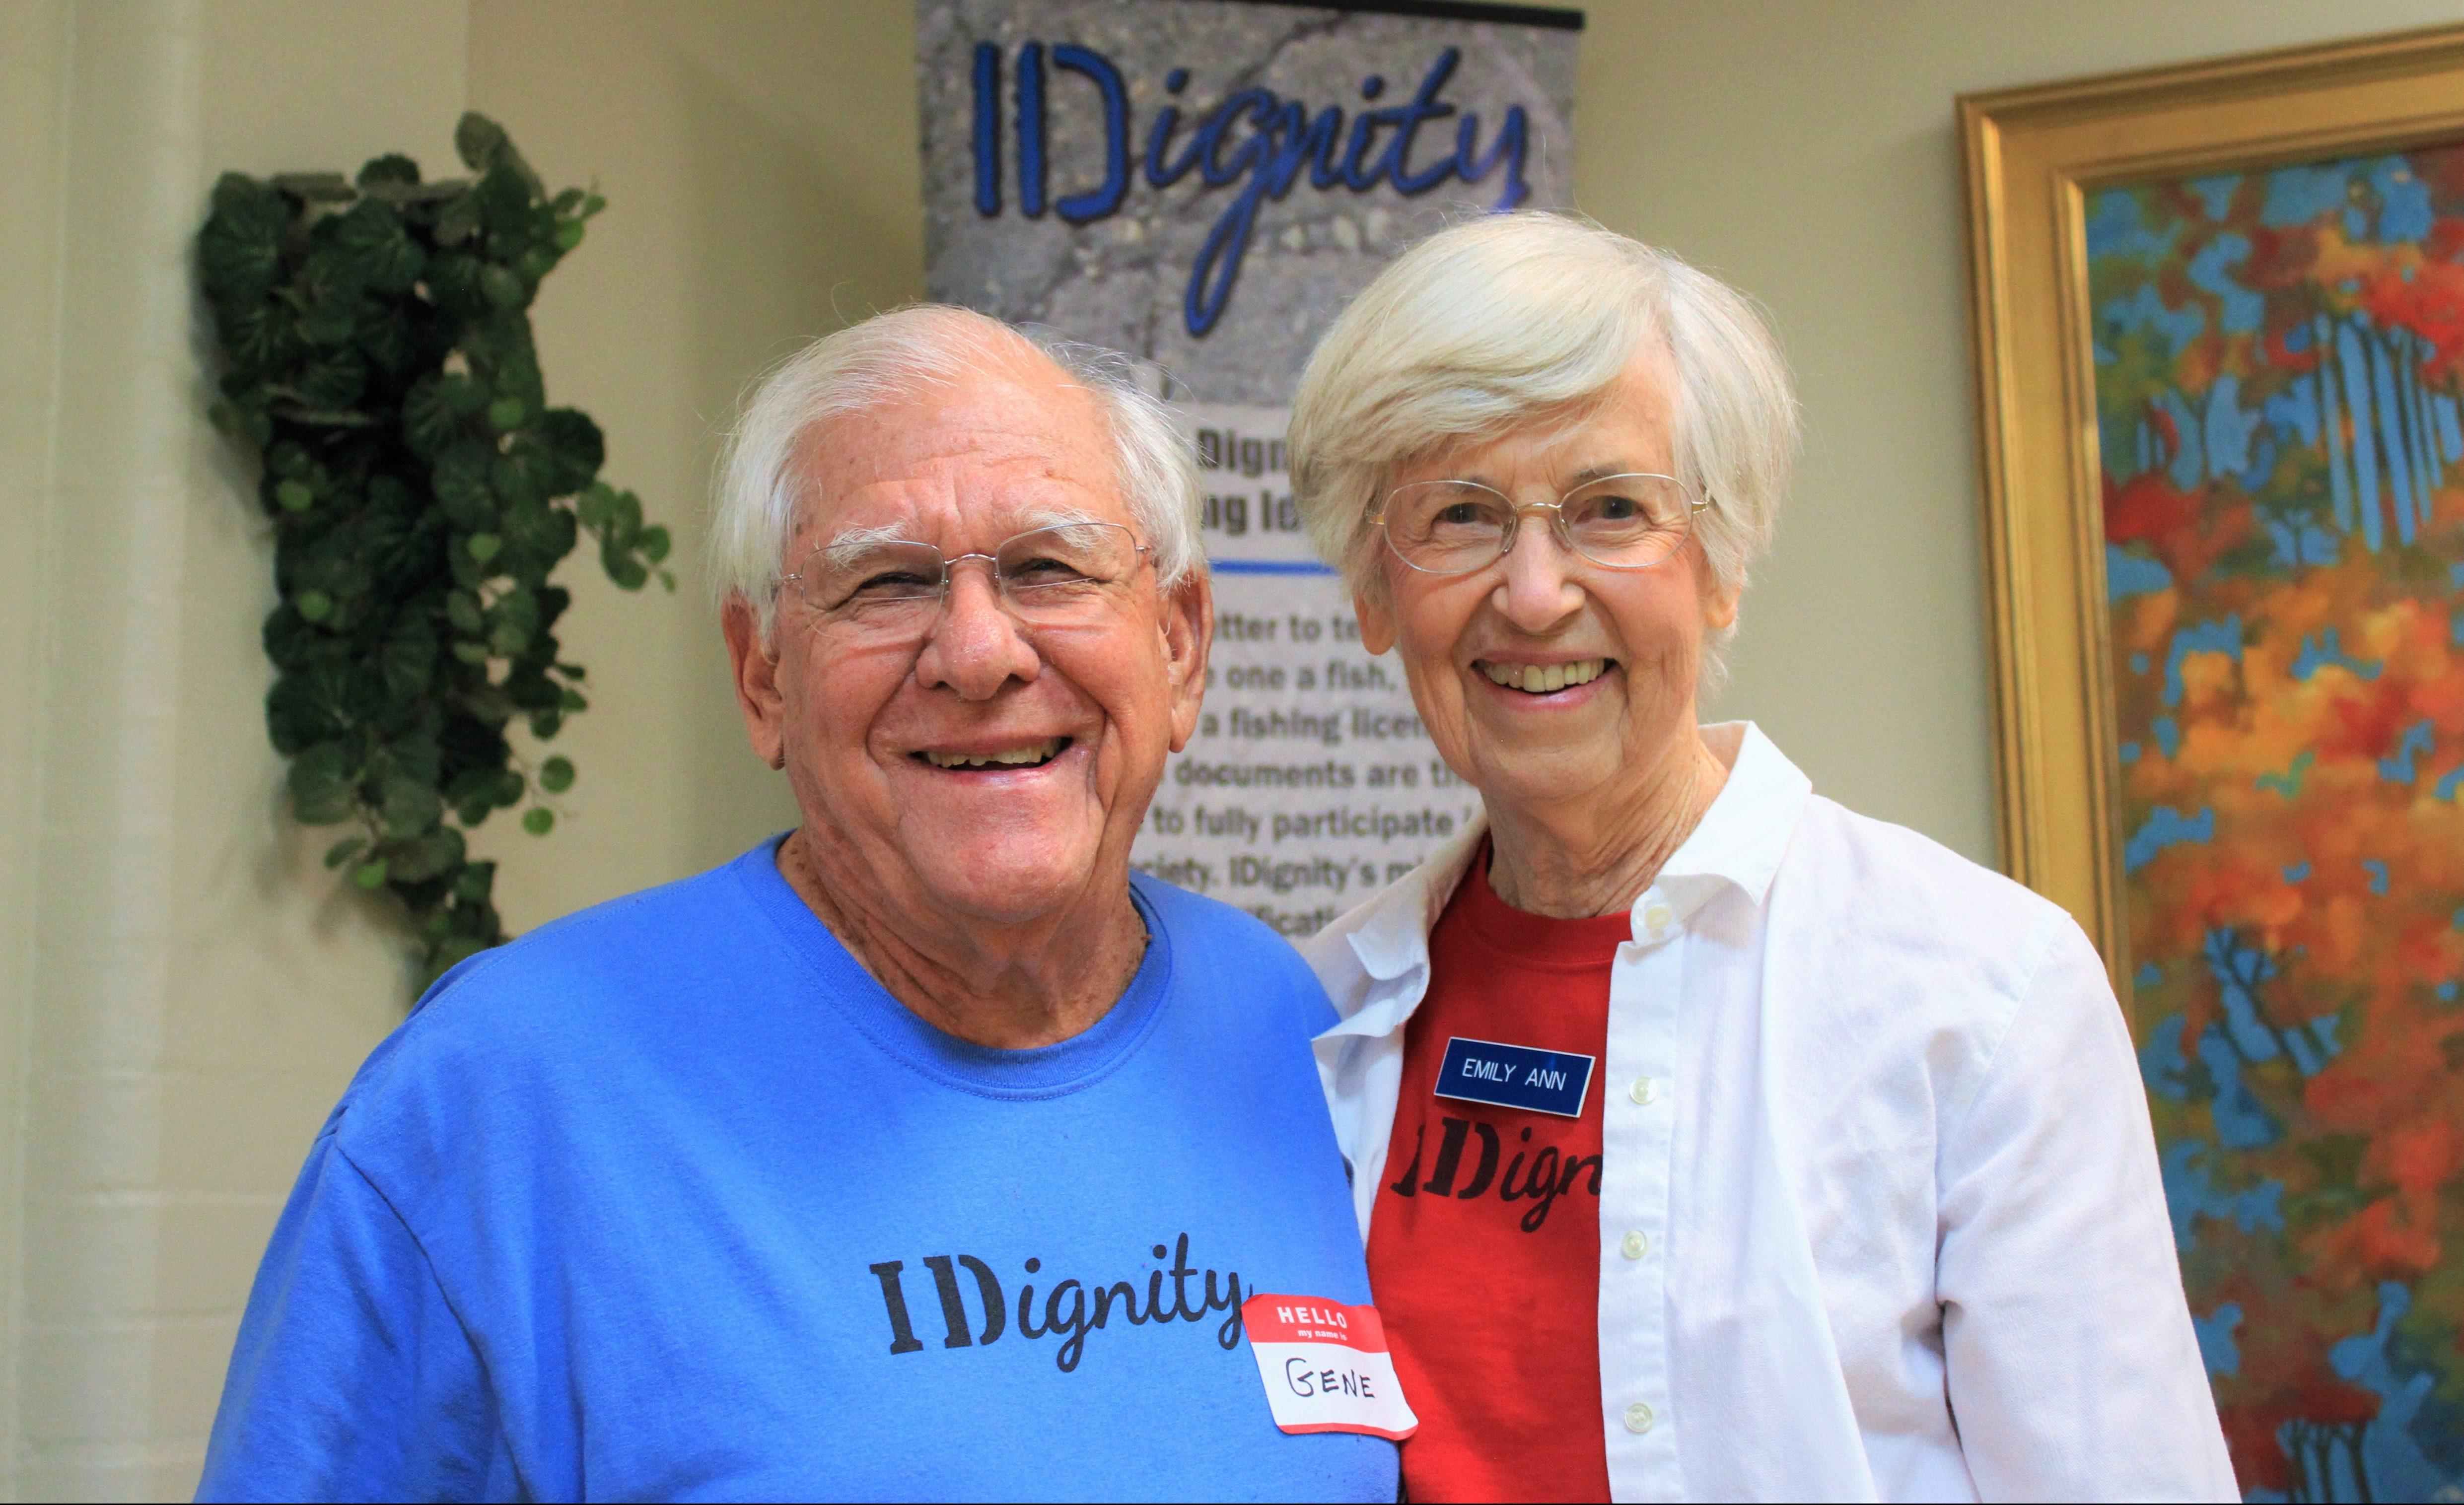 An elderly volunteer couple smile for the camera while serving food to volunteers in the hospitality room at an Identification Clinic